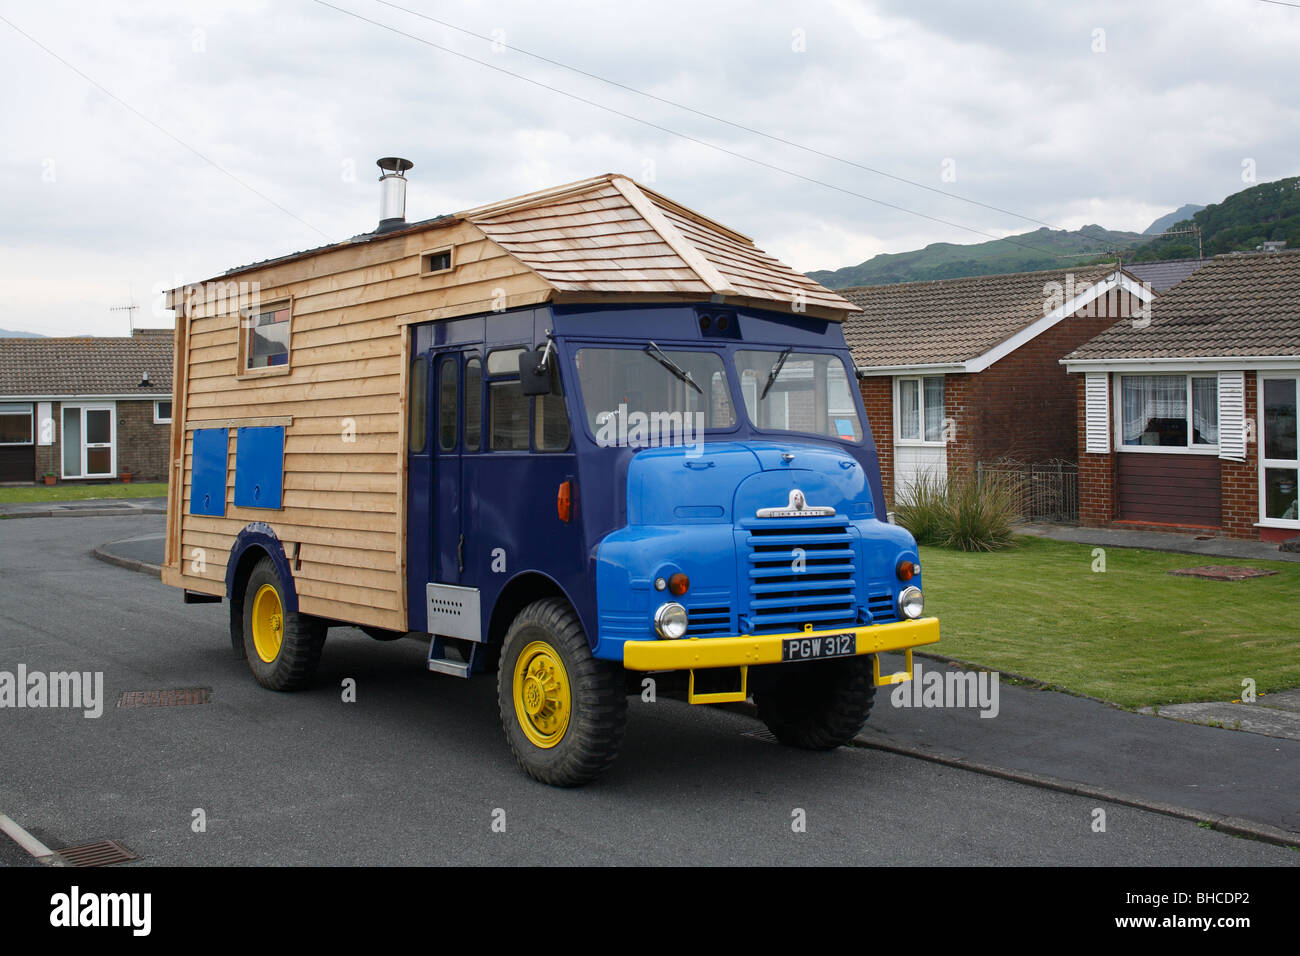 Heather and Ivan Morison's portable sci-fi library in a wooden trailer - Stock Image